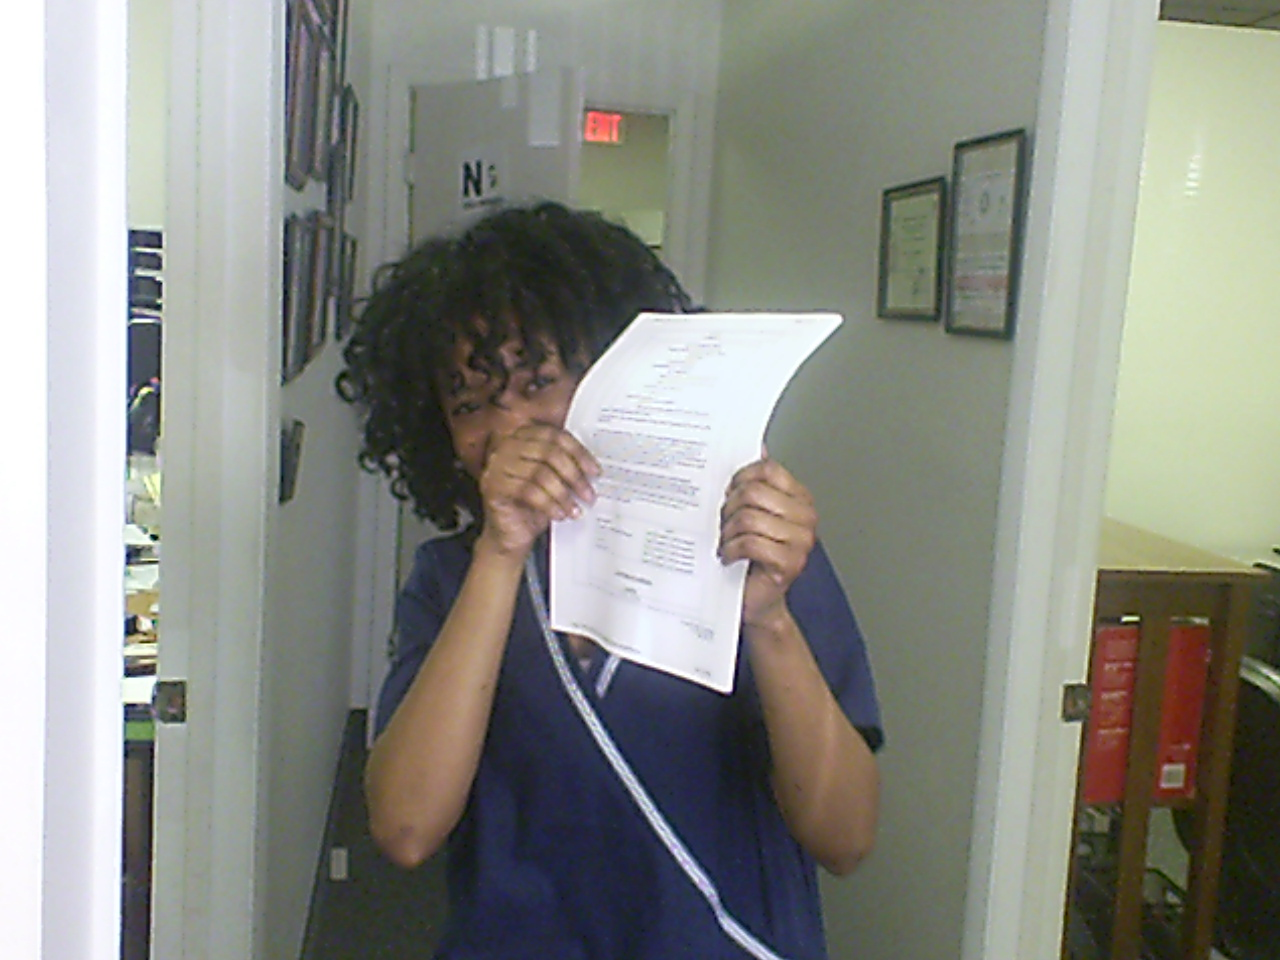 Port st lucie fl certified nursing assistant review class cna be a certified nursing assistant xflitez Image collections